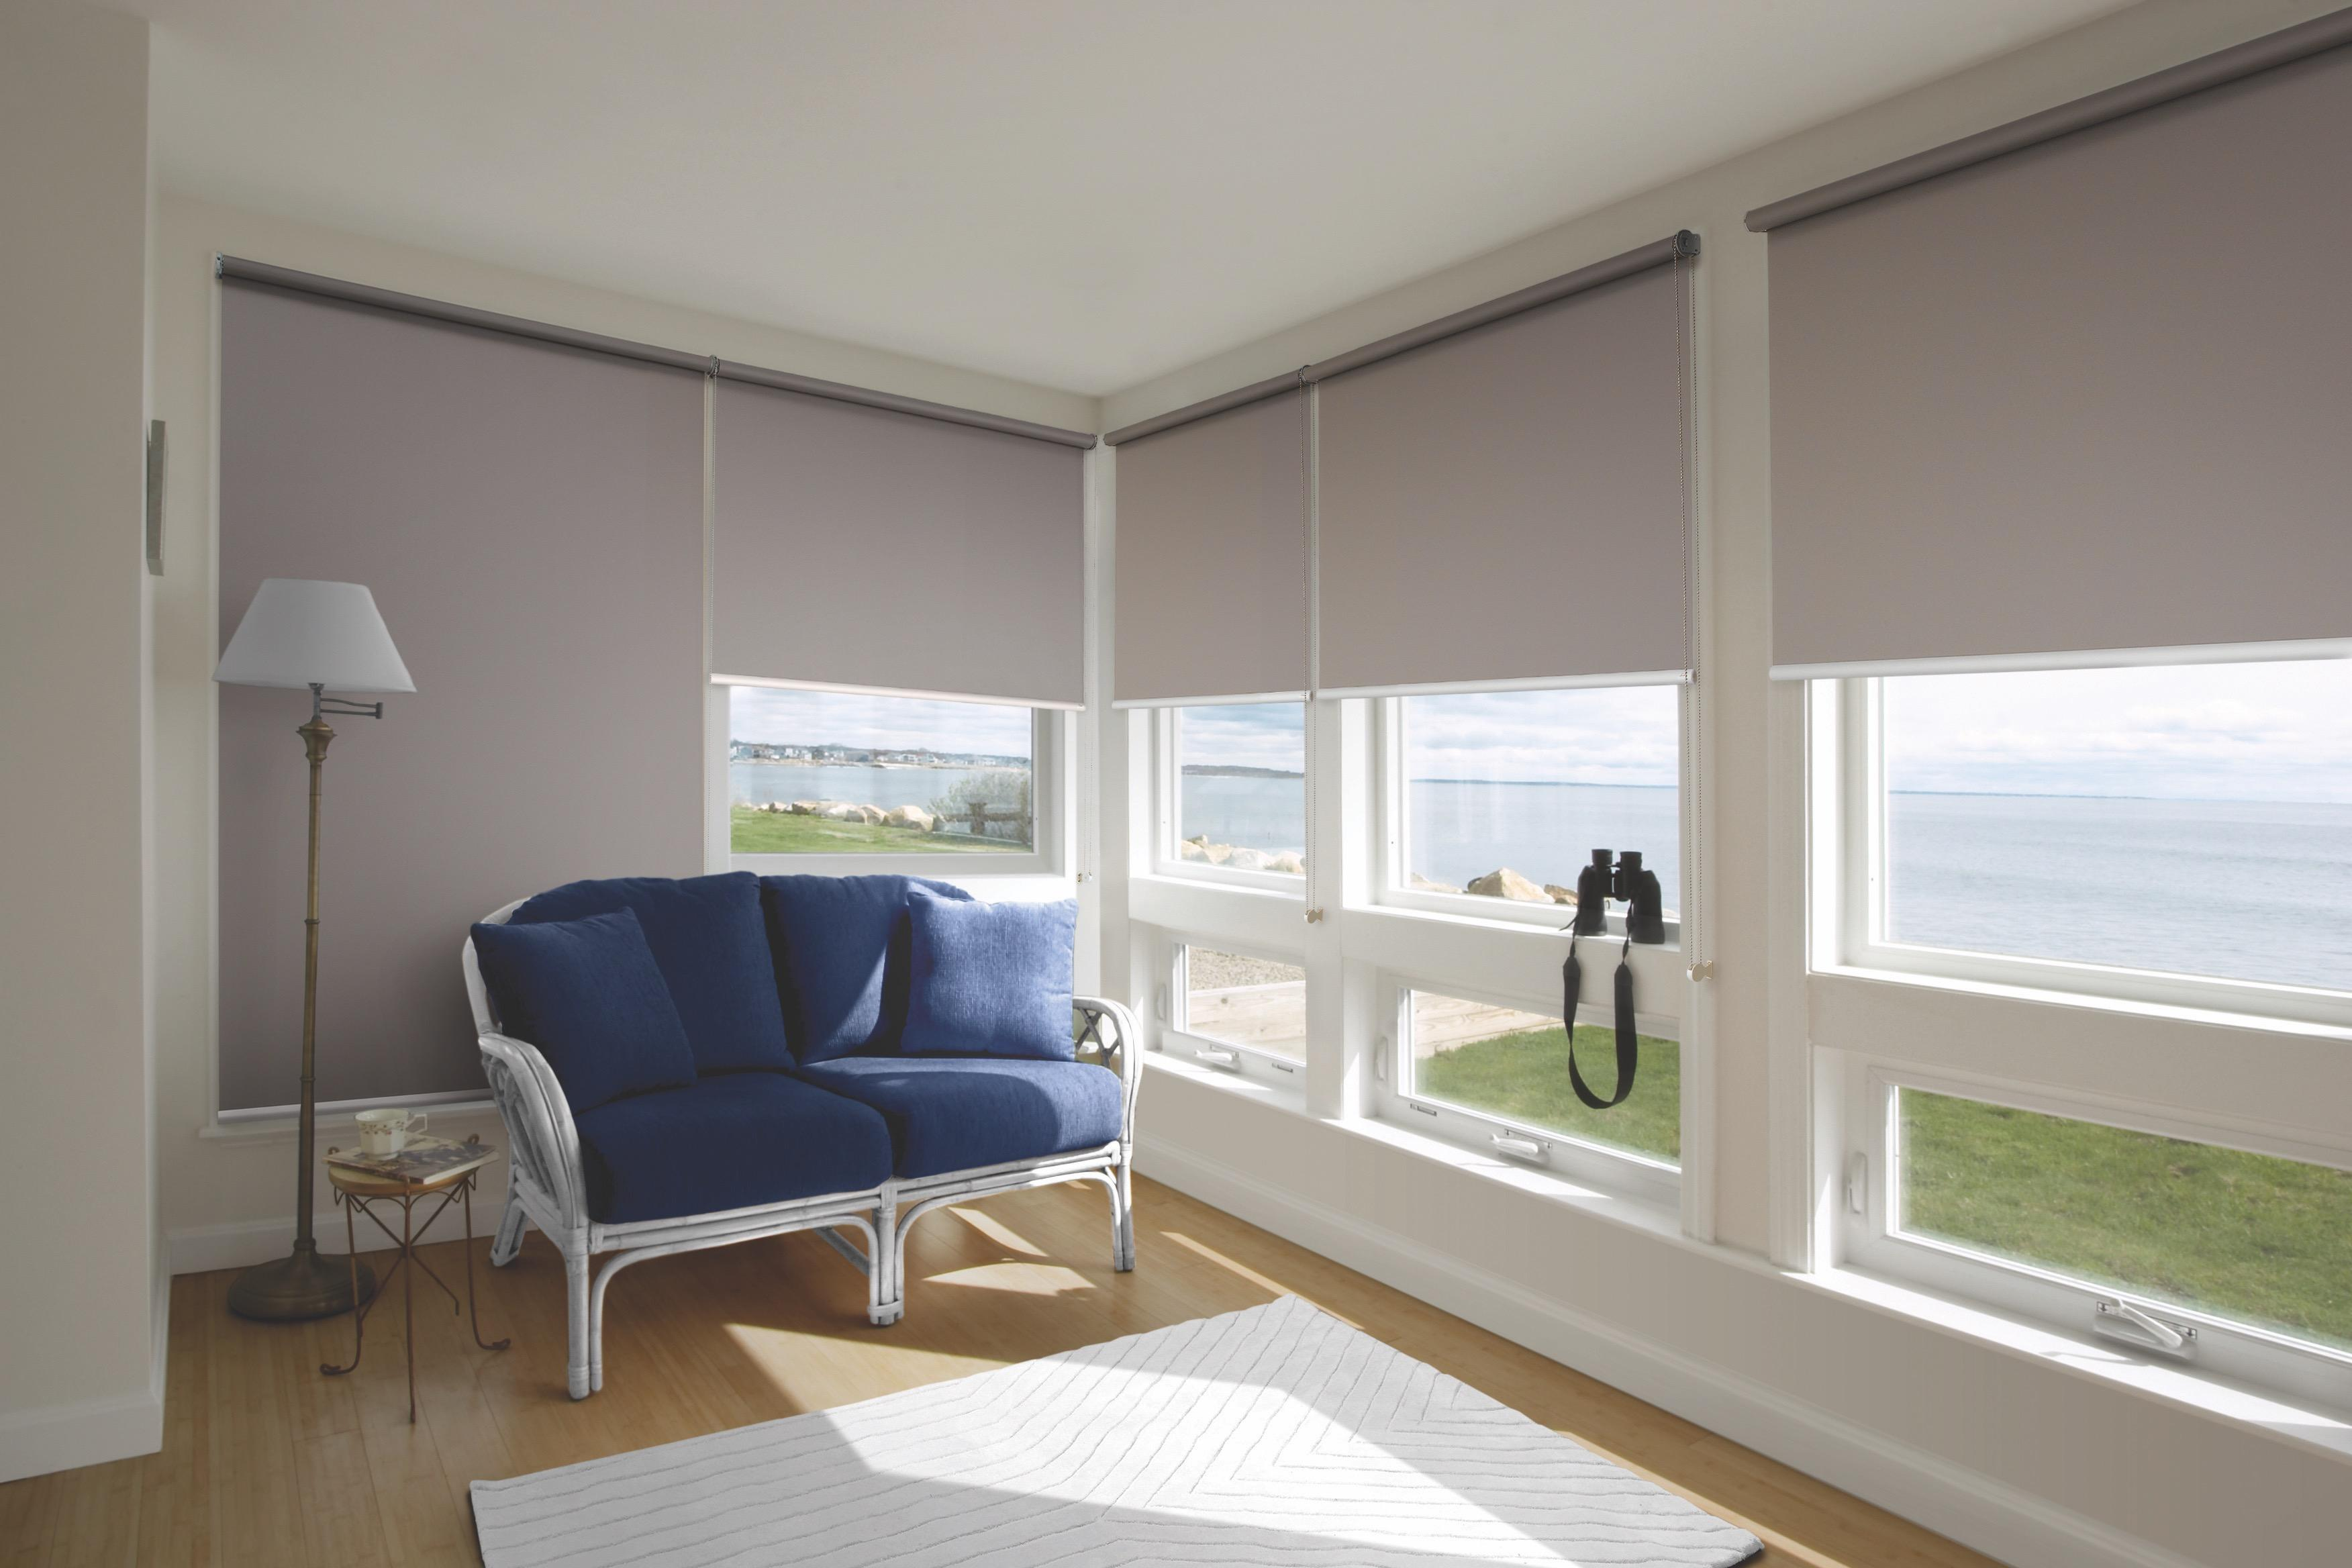 Home Office Decor Blackout Roller Blind Ecohaus Singapore Roller Blinds  (Width x Height)